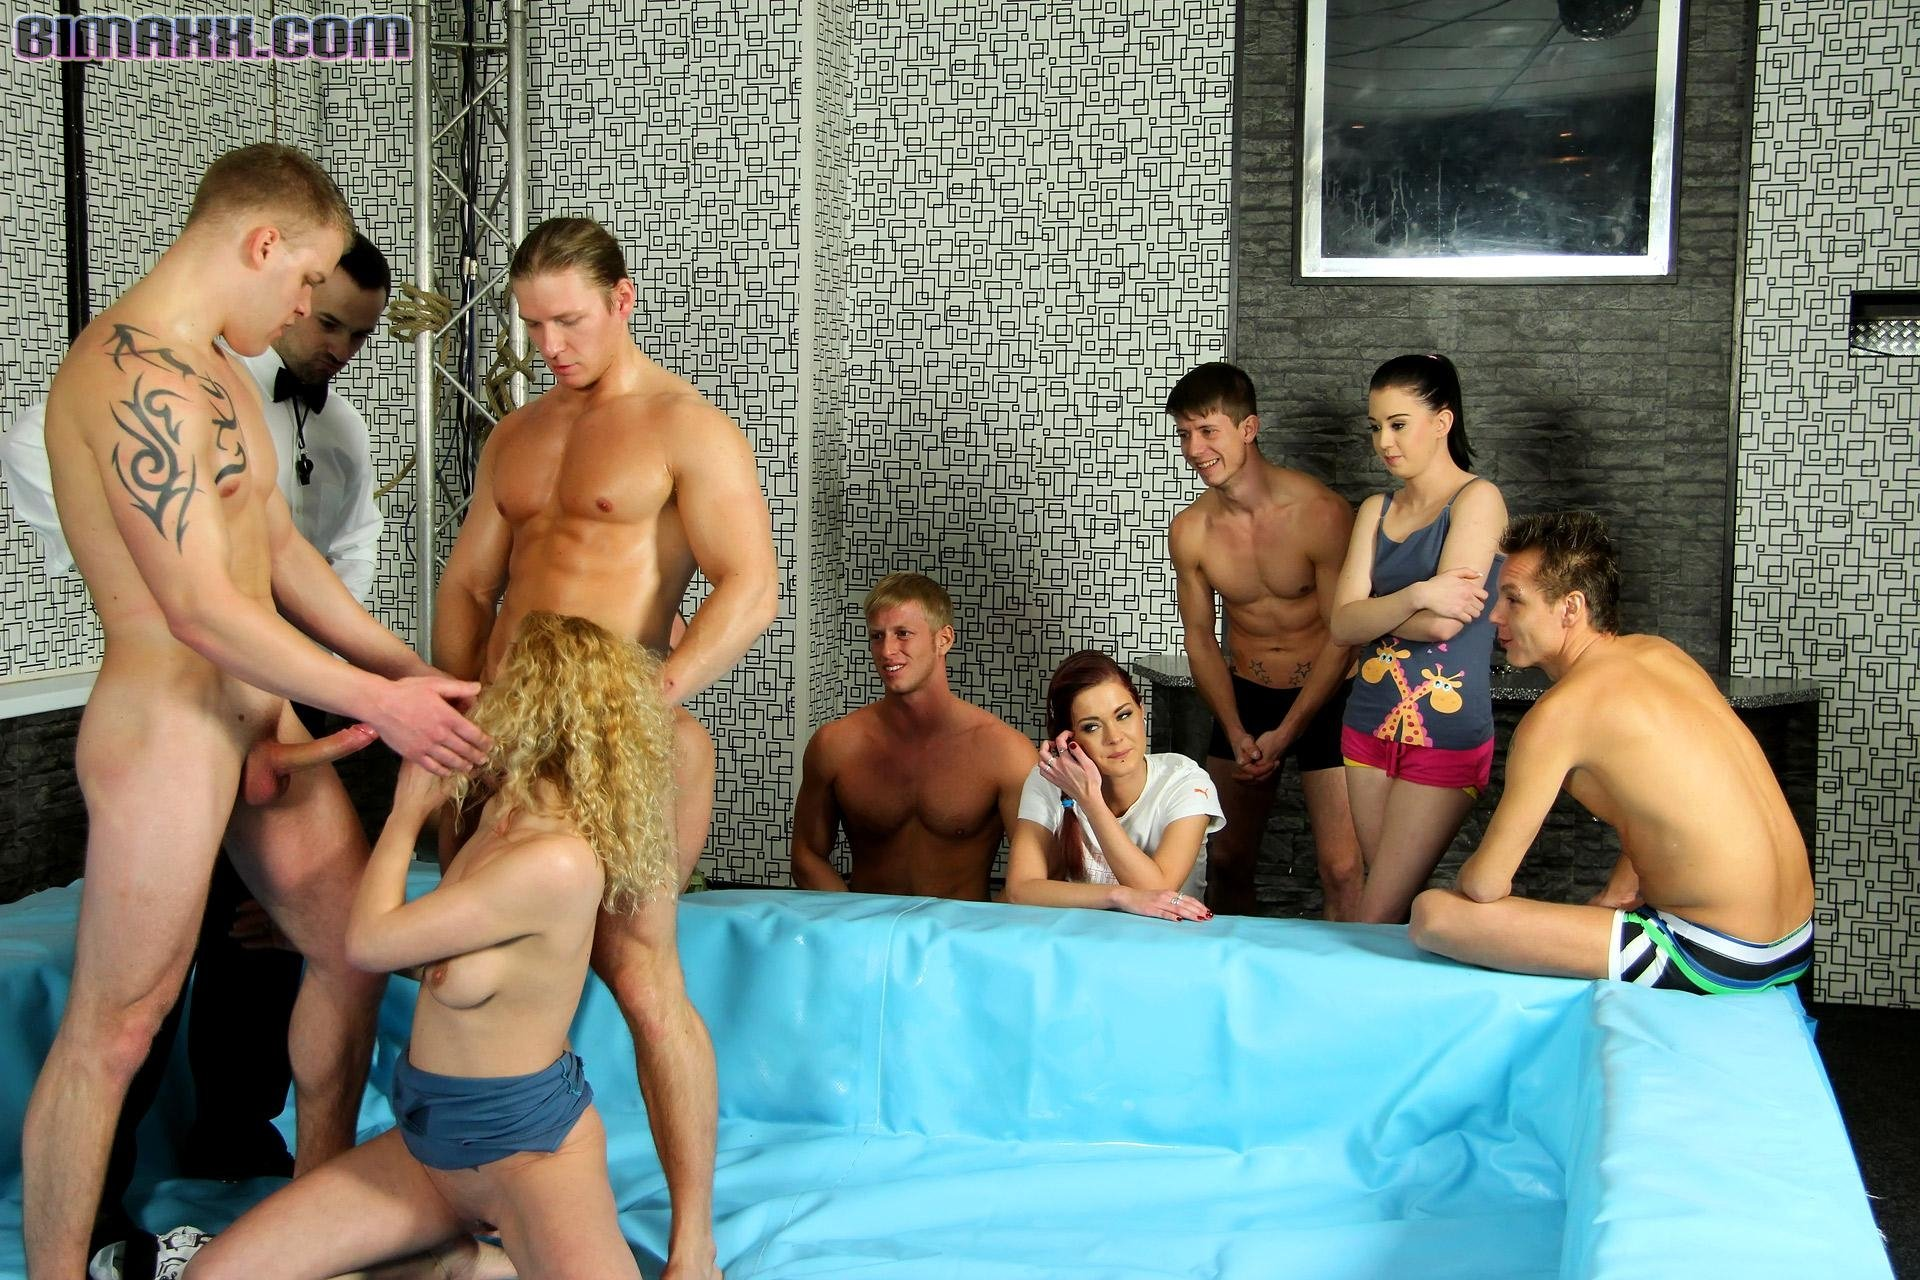 realswingersporn free gay fraternity videos